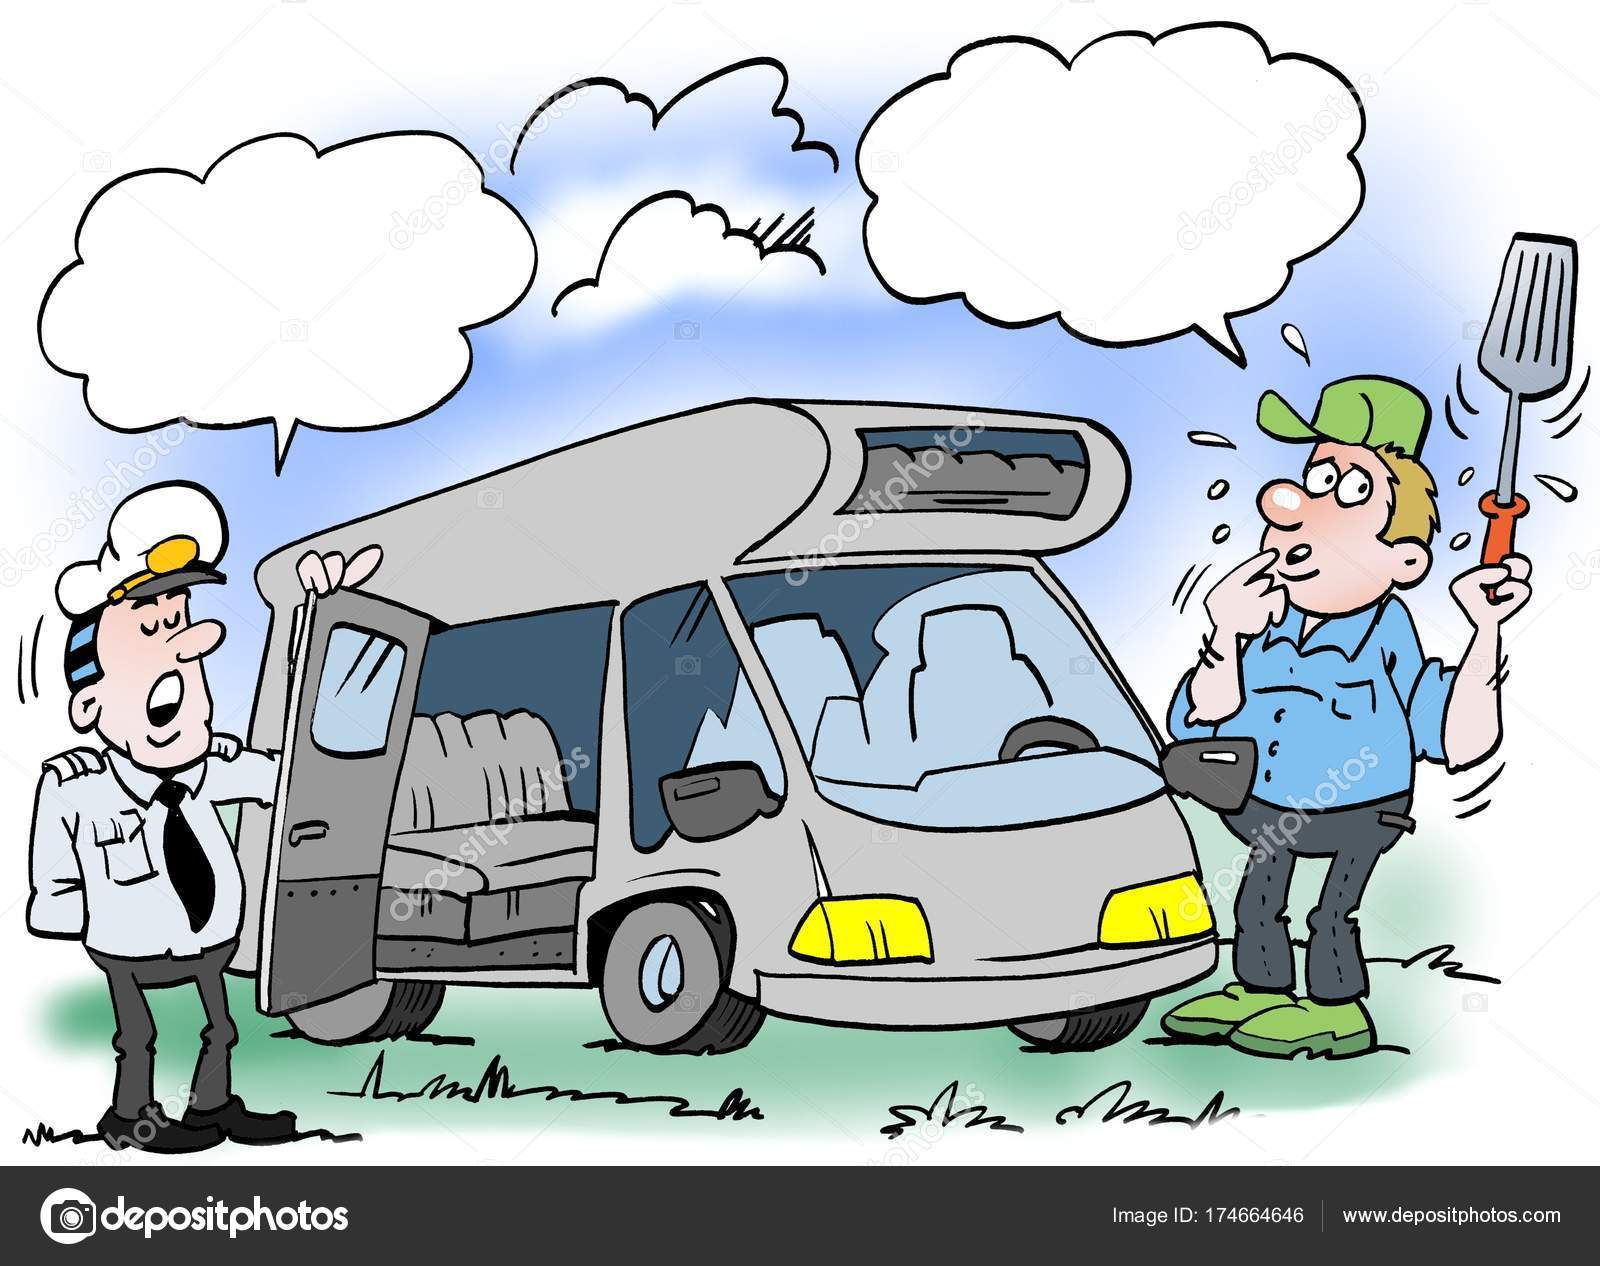 Cartoon illustration of a man who gets checked his camper 9